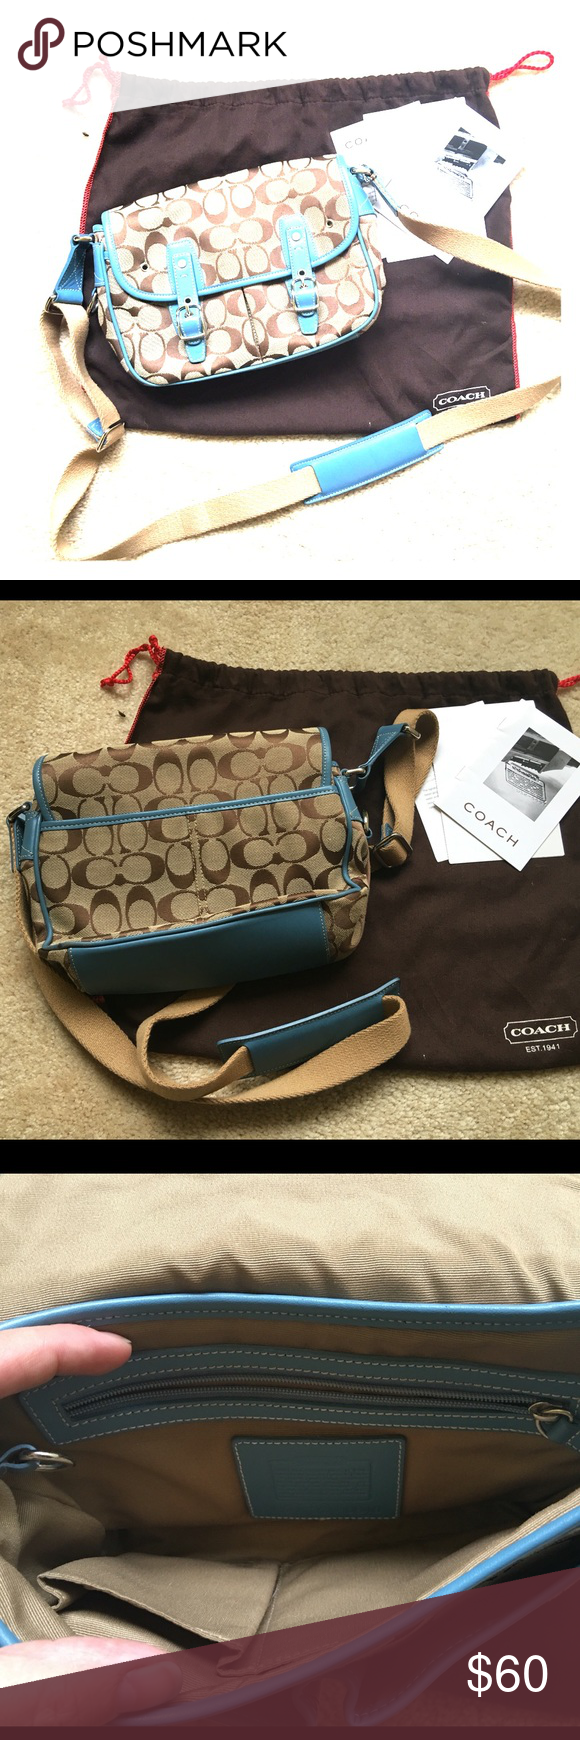 Coach crossbody purse Perfect condition Coach signature design with baby blue trim adjustable crossbody purse. Comes with original papers and dustbag! Coach Bags Crossbody Bags